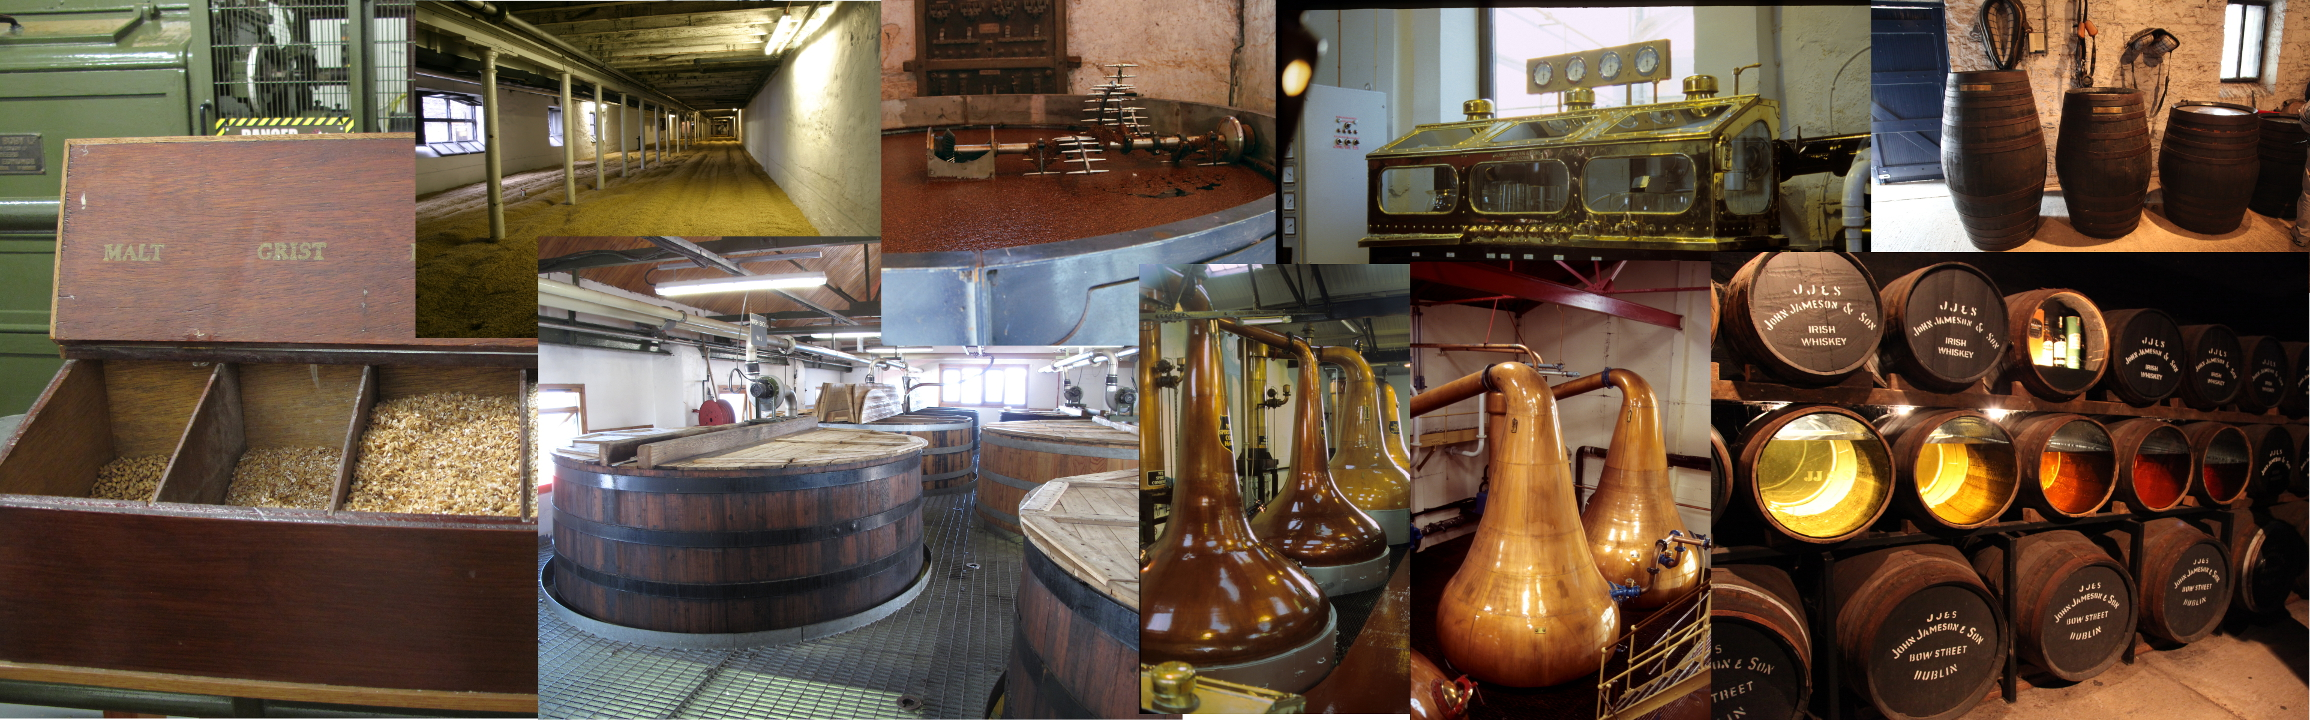 This picture shows the production steps of single malt whisky